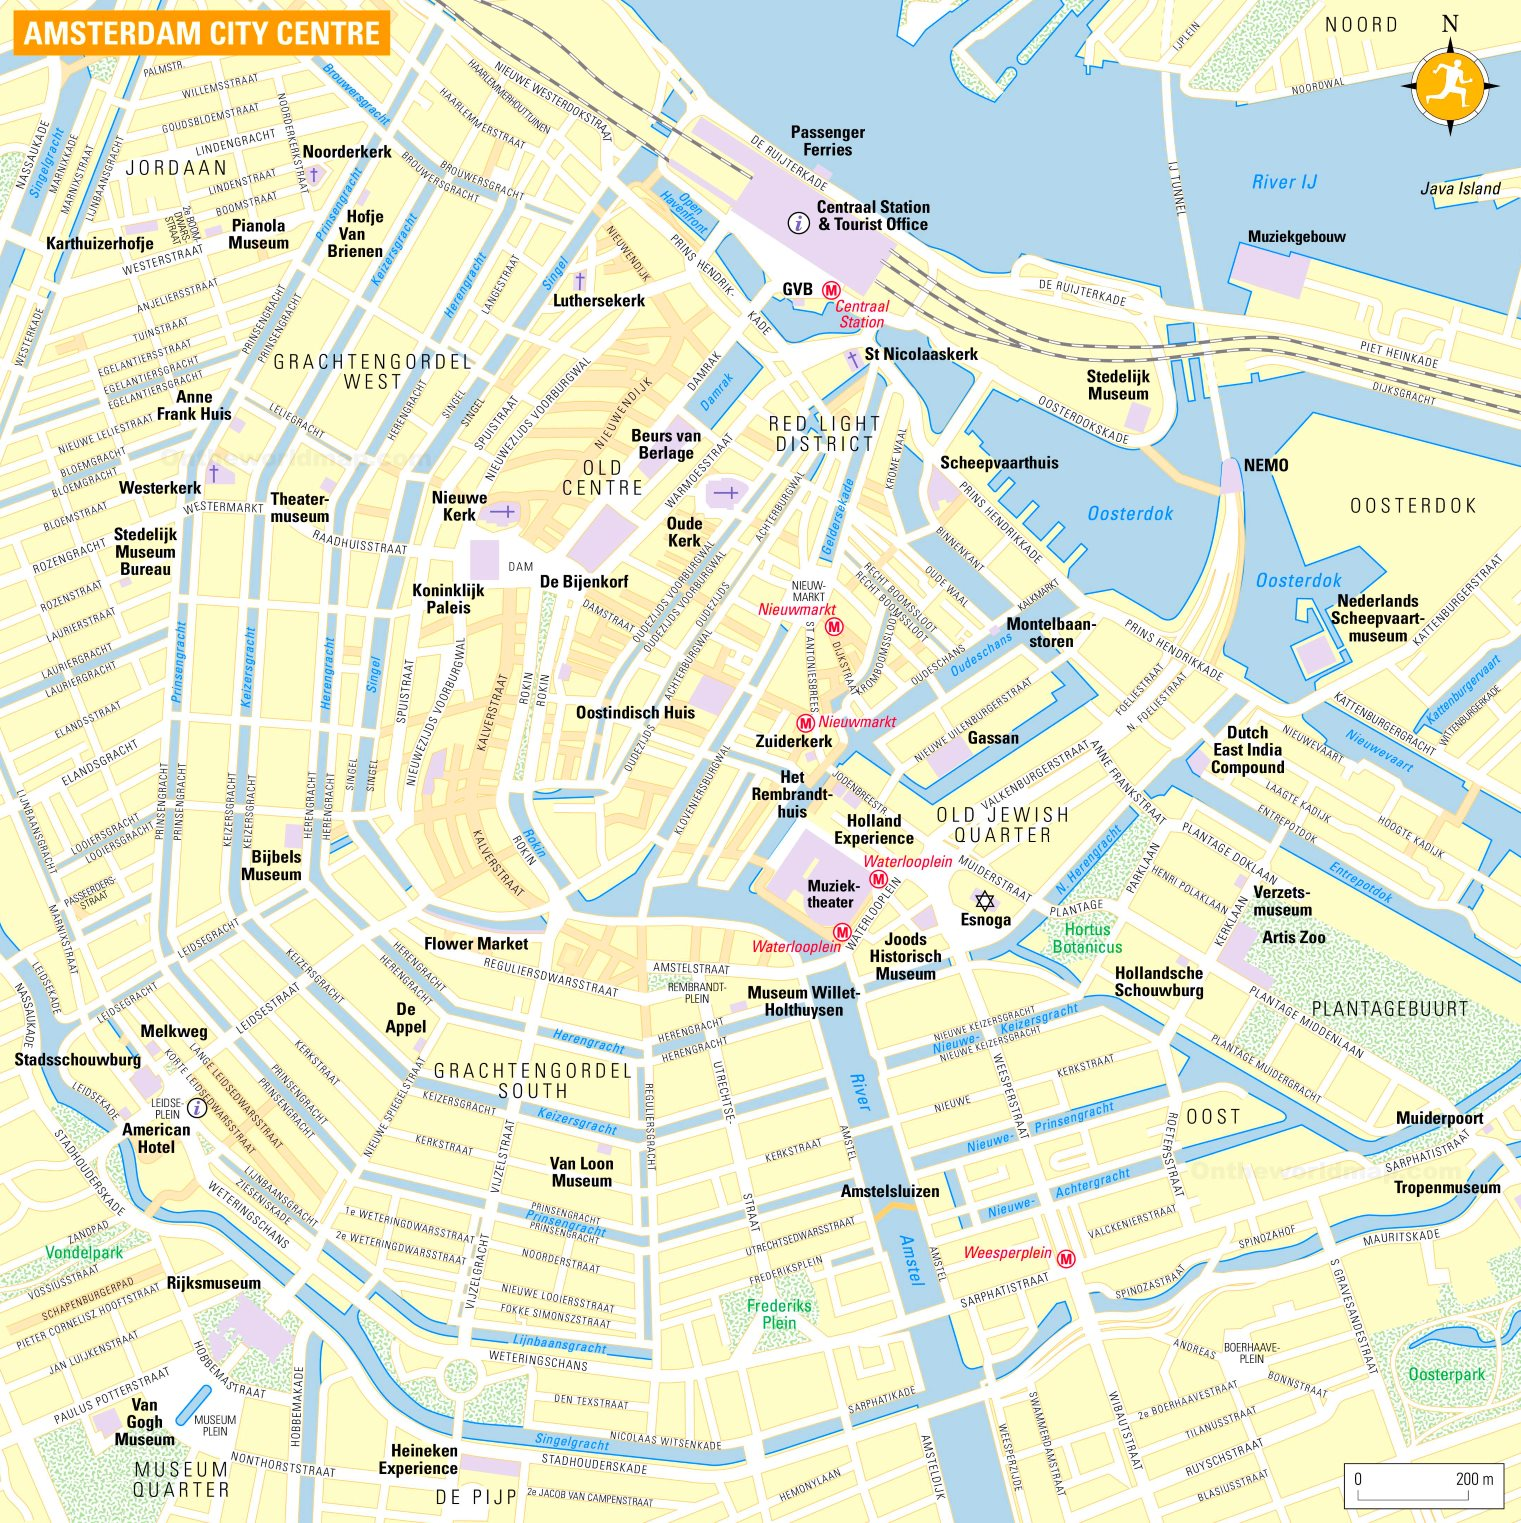 Tourist Map of Amsterdam City Centre on copenhagen map, moscow map, europe map, athens map, holland map, denmark map, israel map, world map, kinderdijk map, the netherlands map, edinburgh map, belgium map, leiden map, madrid map, hamburg map, constantinople map, berlin map, rotterdam map, budapest on map, stockholm on map,